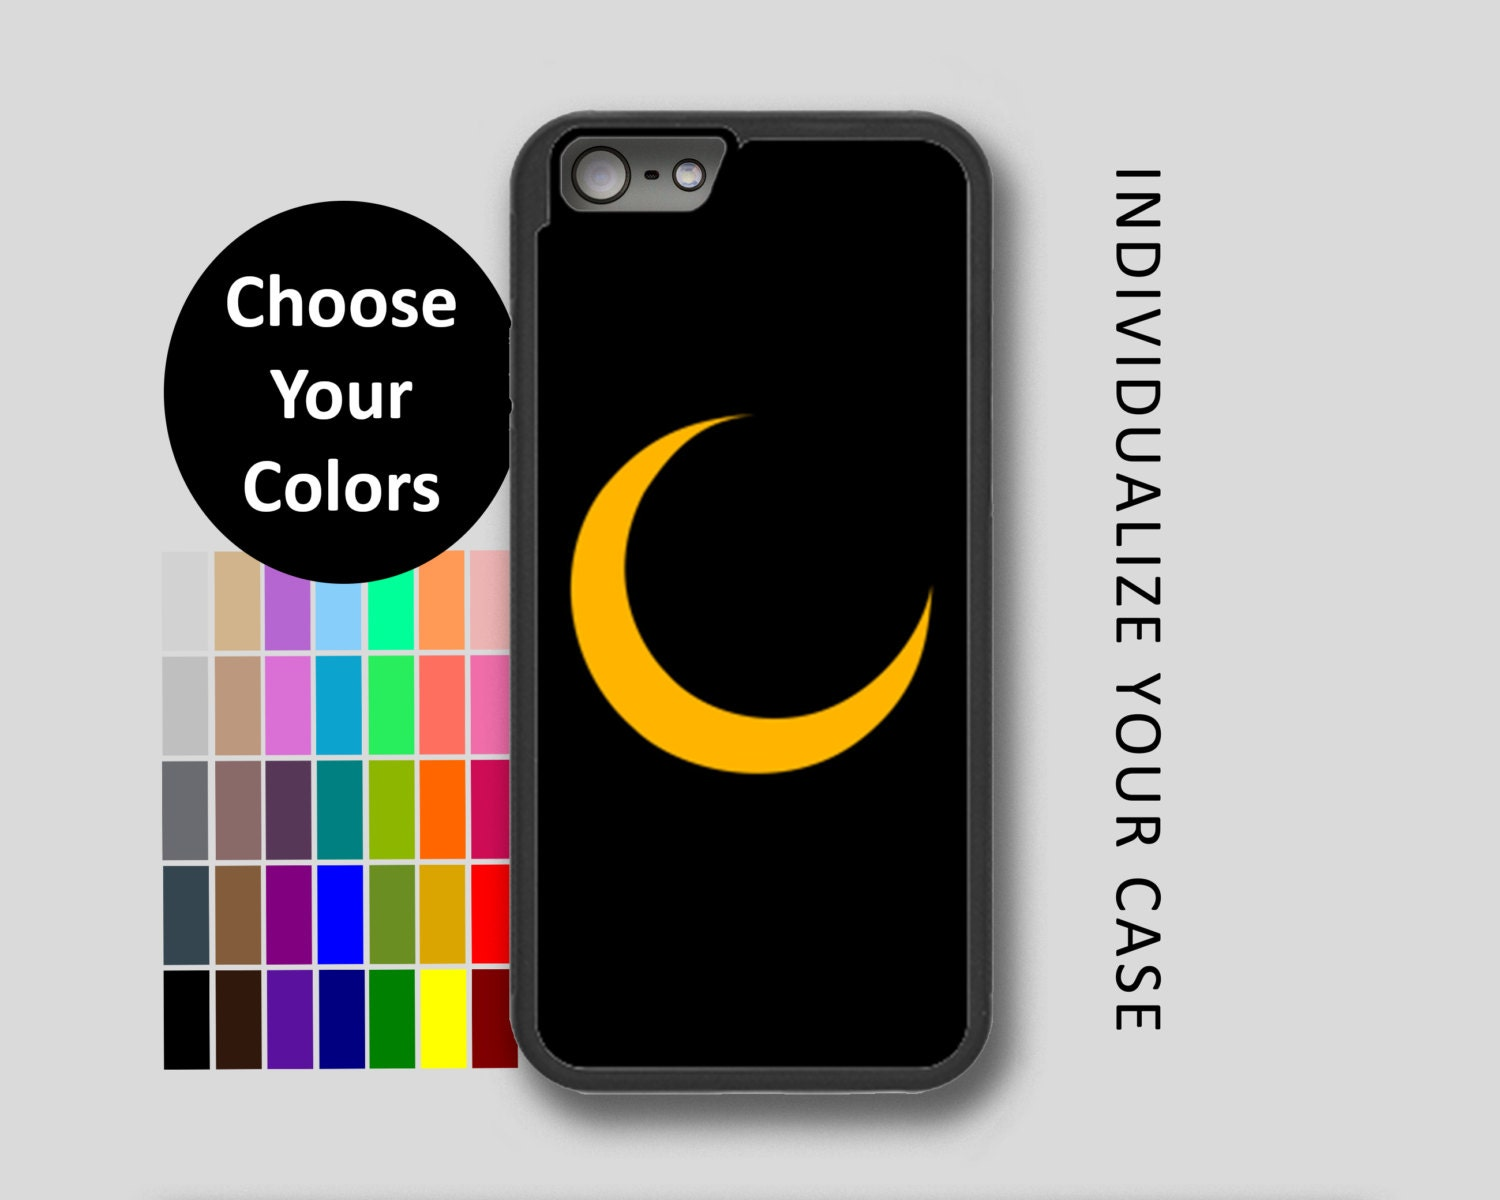 crescent moon iphone simple moon iphone crescent moon iphone moon 2460